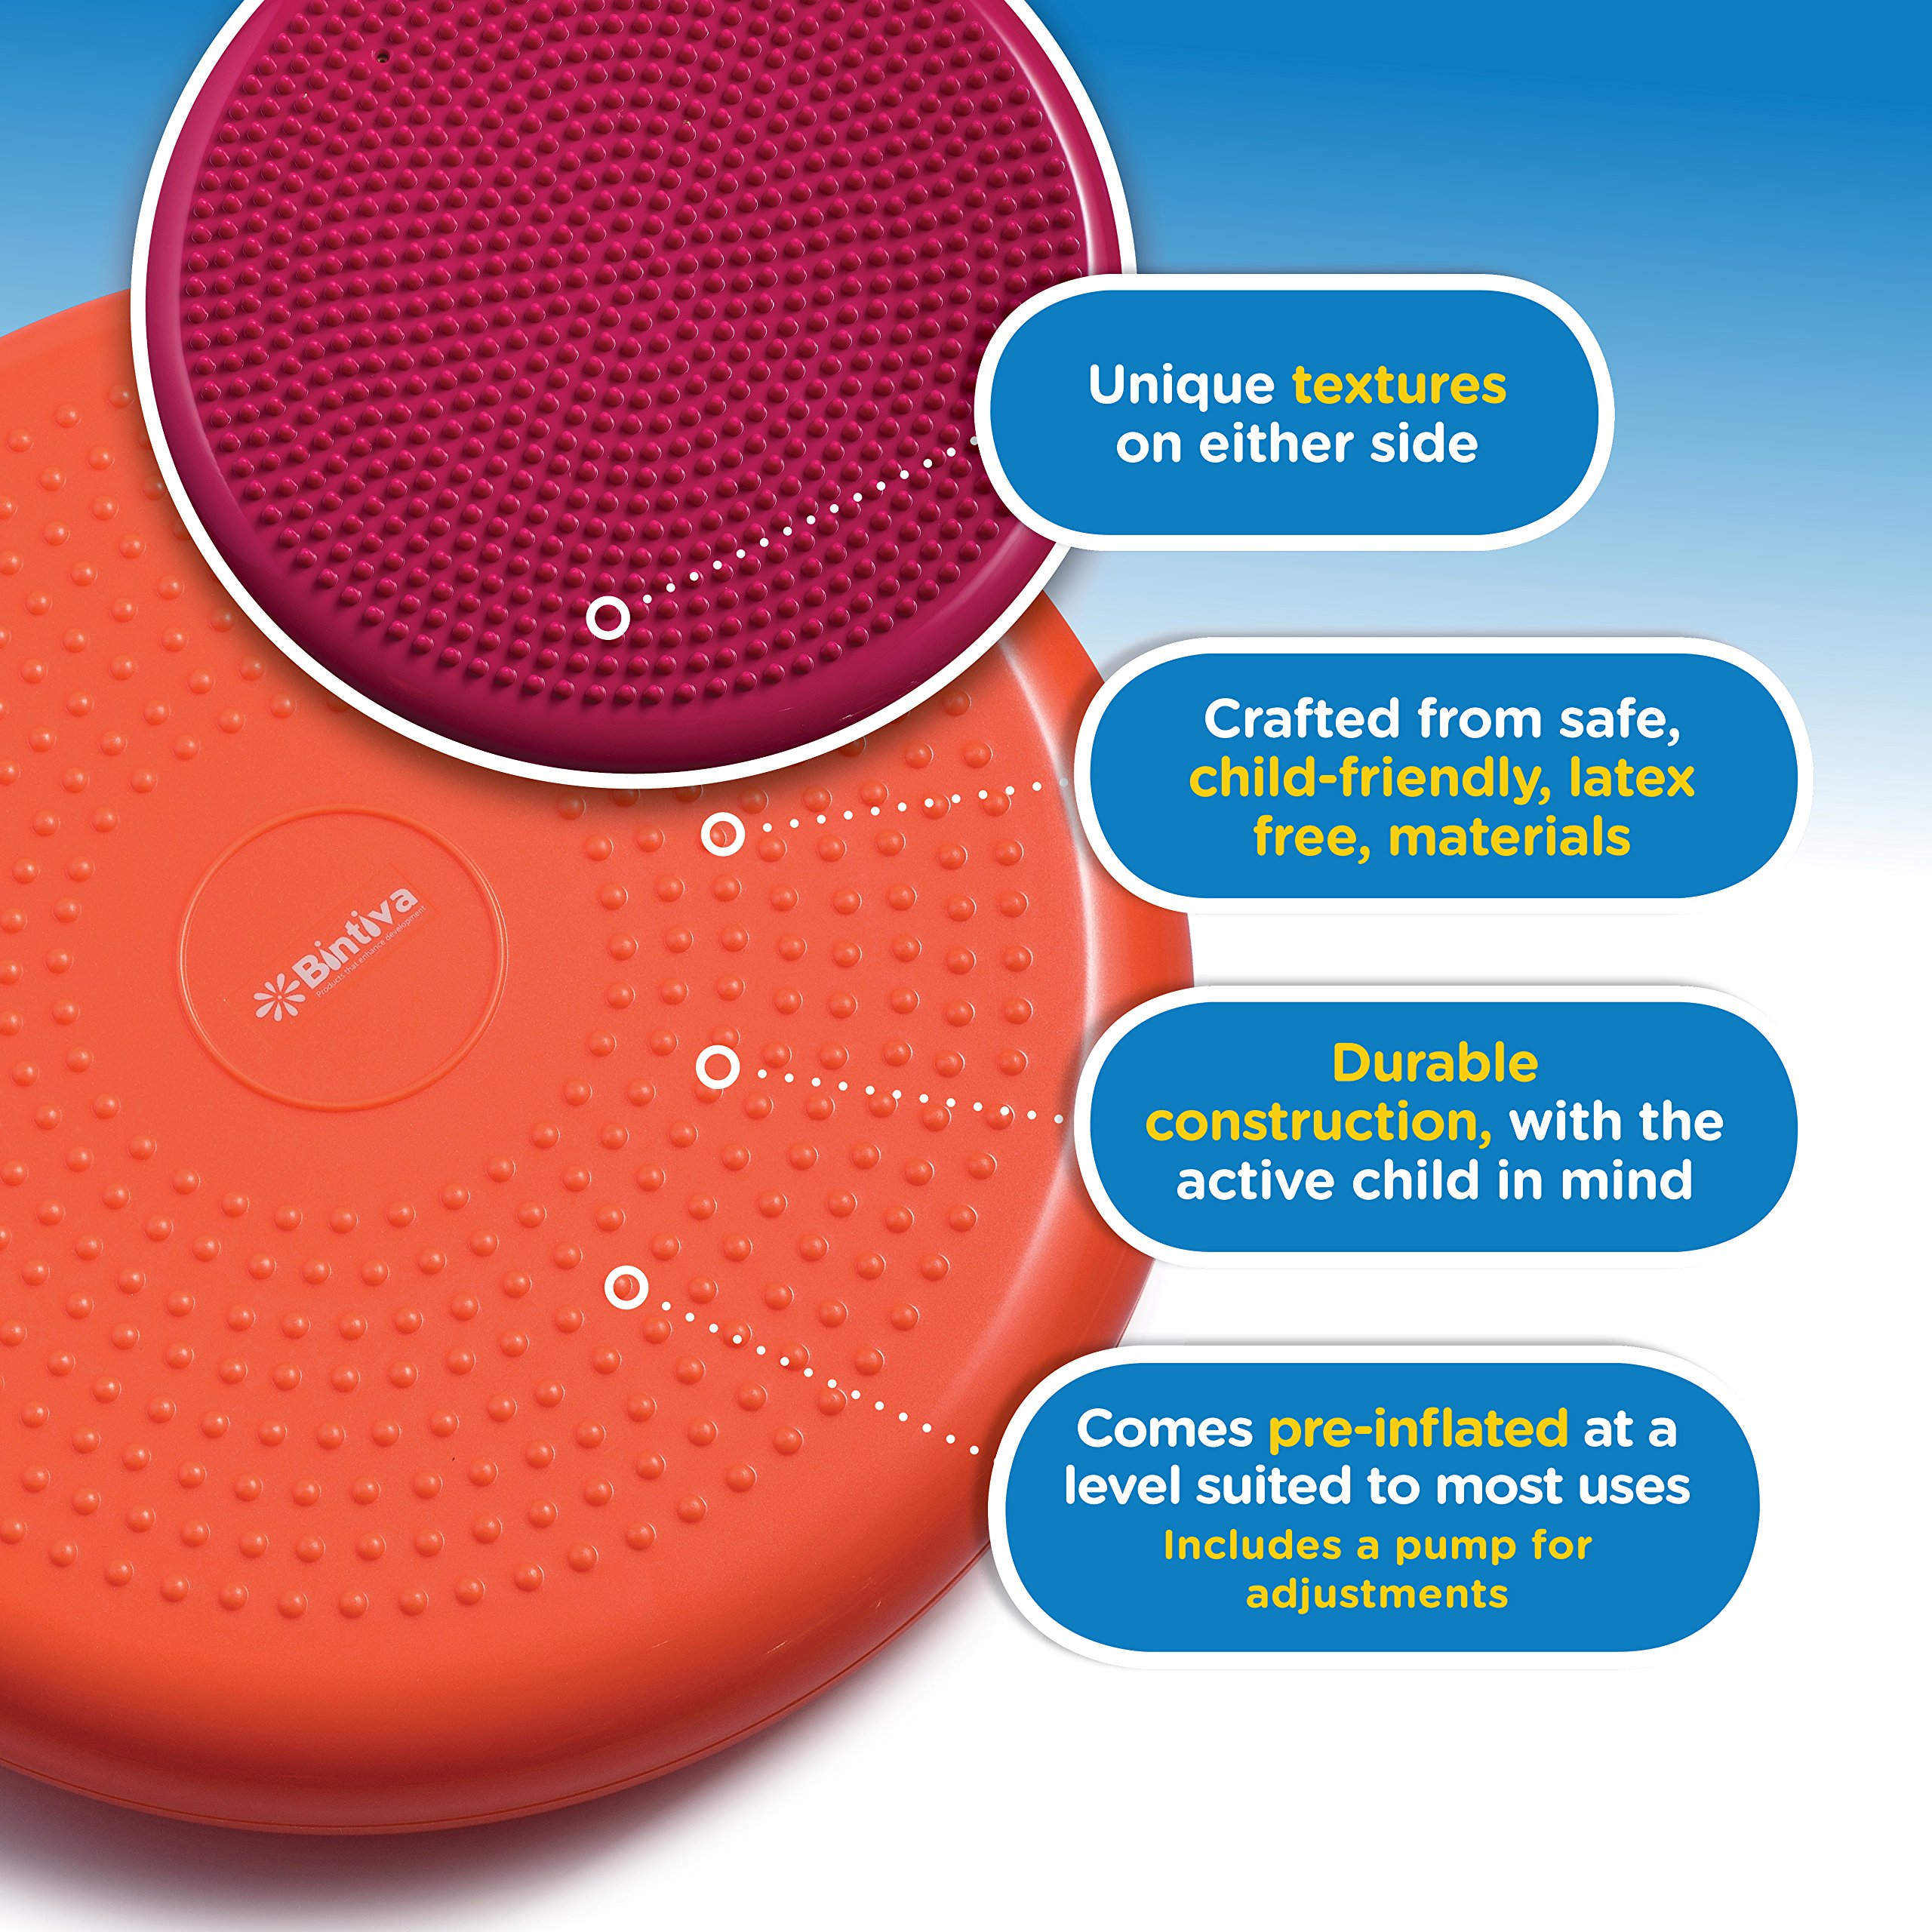 Inflated Stability Wobble Cushion, Including Free Pump / Exercise Fitness Core Balance Disc,Blue,size: 13 inches / 33 cm diameter by bintiva (Image #5)